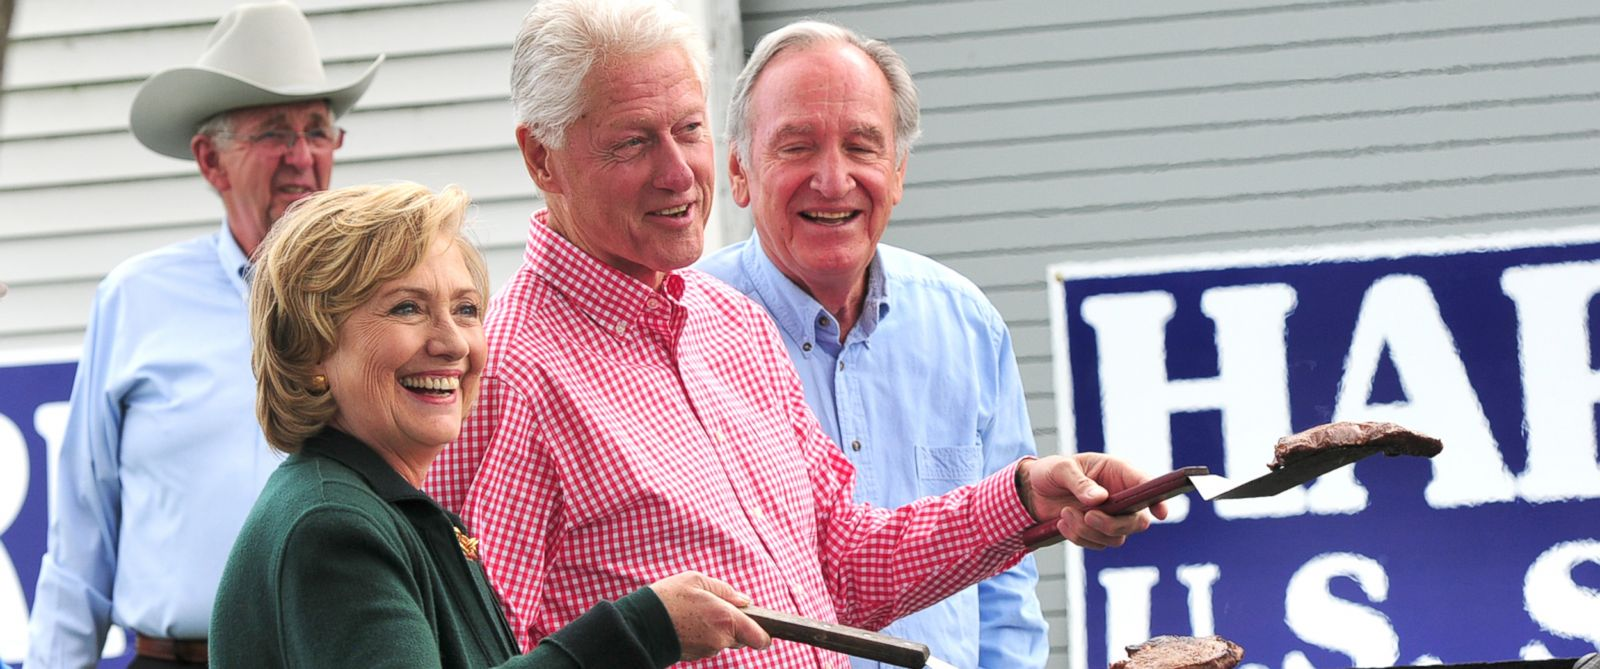 PHOTO: Former President Bill Clinton and his wife, former Secretary of State Hillary Rodham Clinton and Senator Tom Harkin flip steaks at the 37th Harkin Steak Fry, Sept. 14, 2014 in Indianola, Iowa.